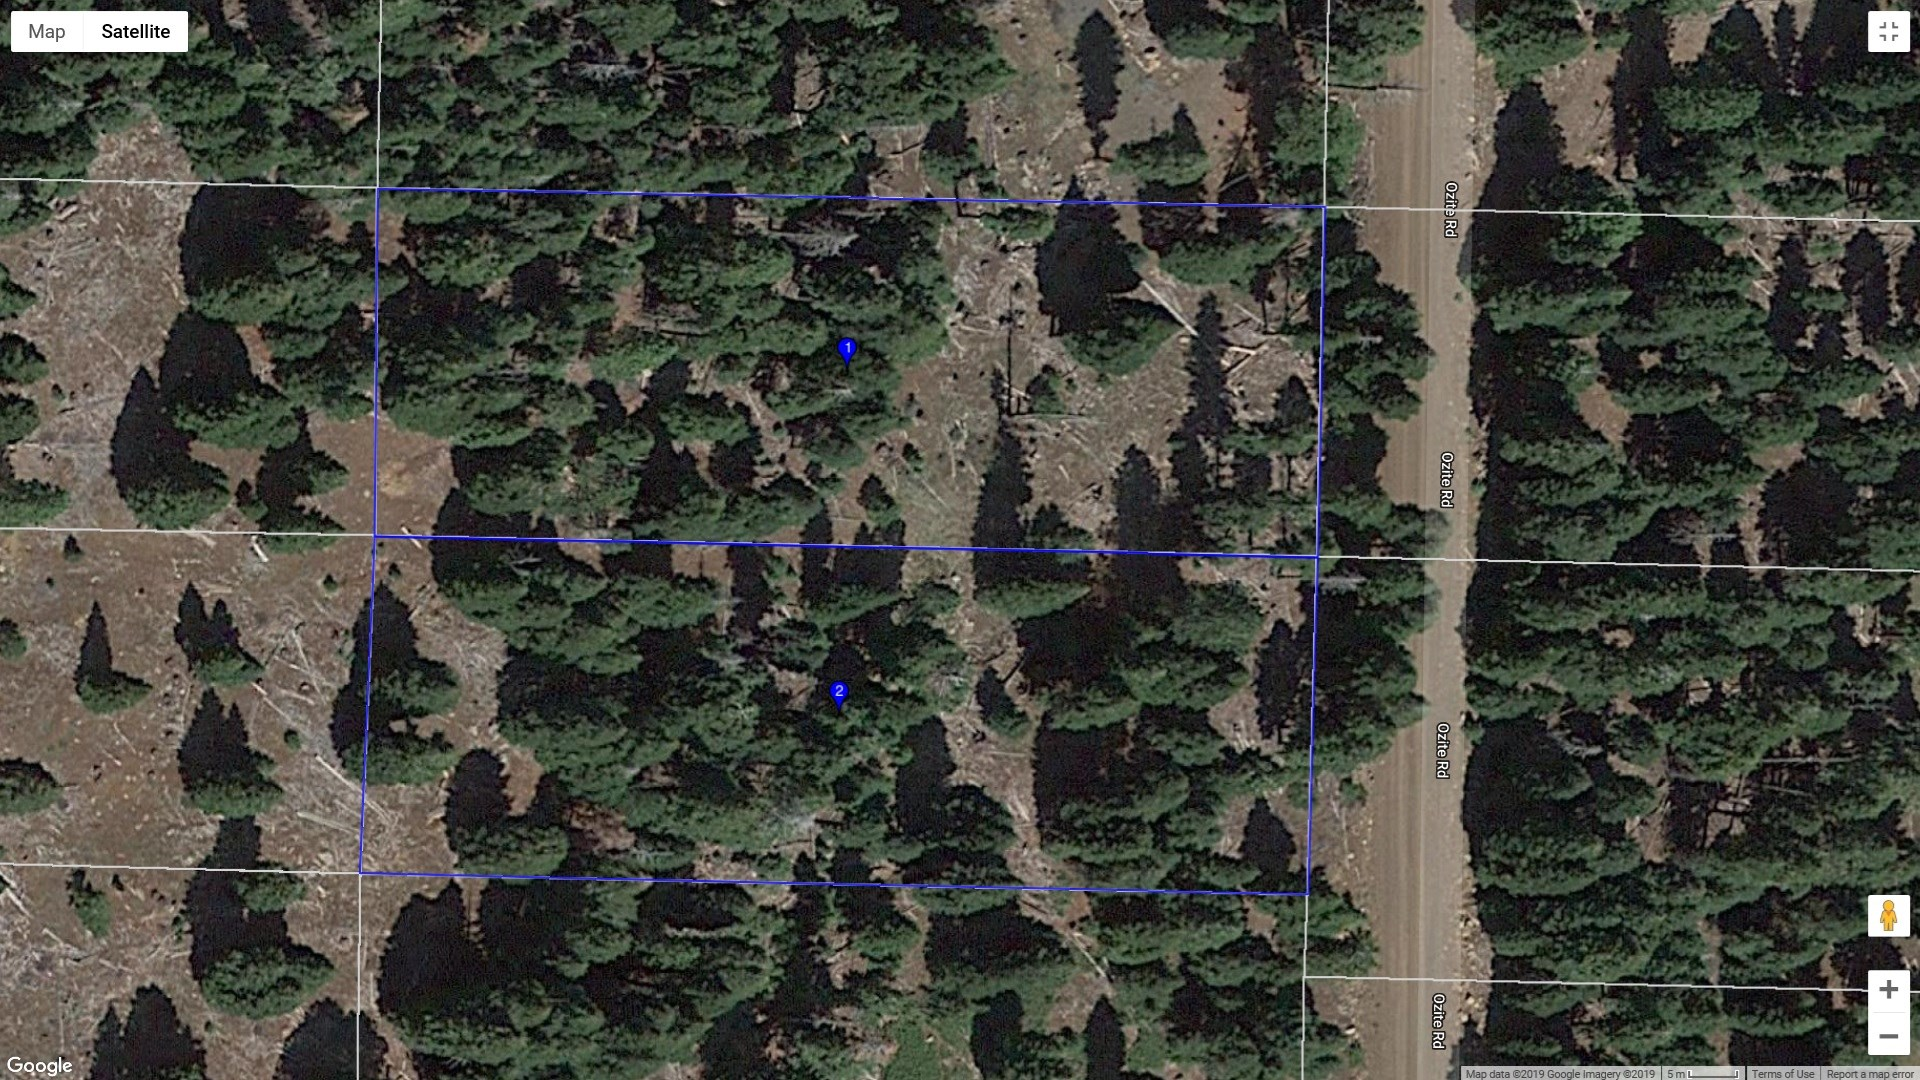 1.82 acres in the Pines of Modoc County, Northern California